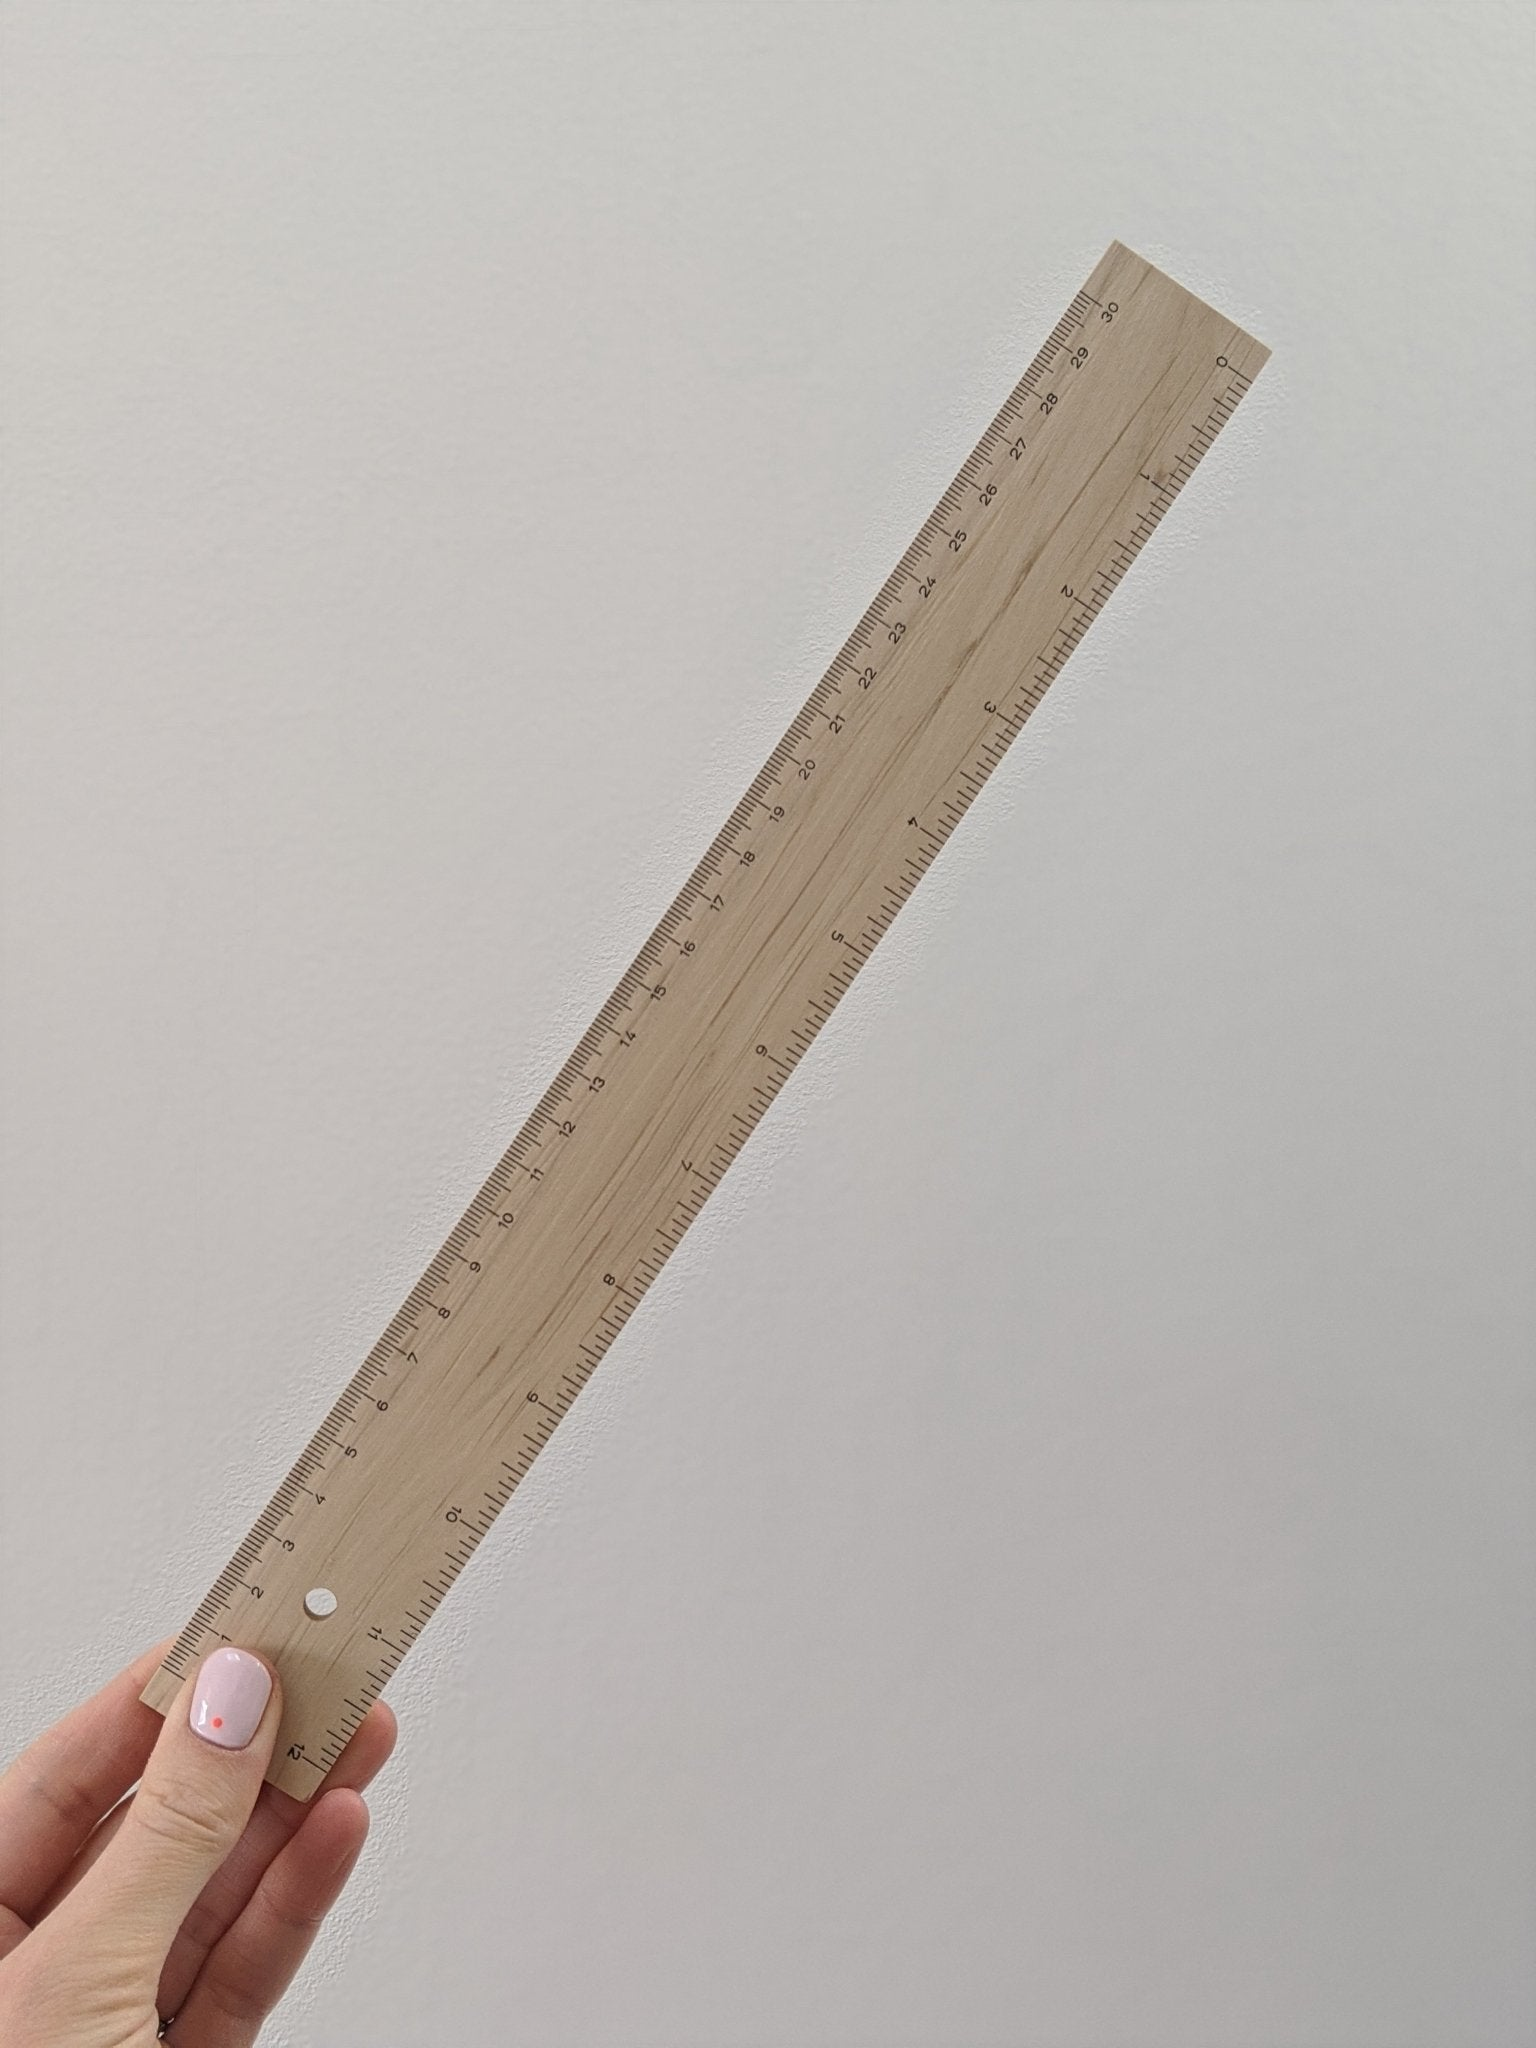 Wooden ruler - The Stationery Cupboard